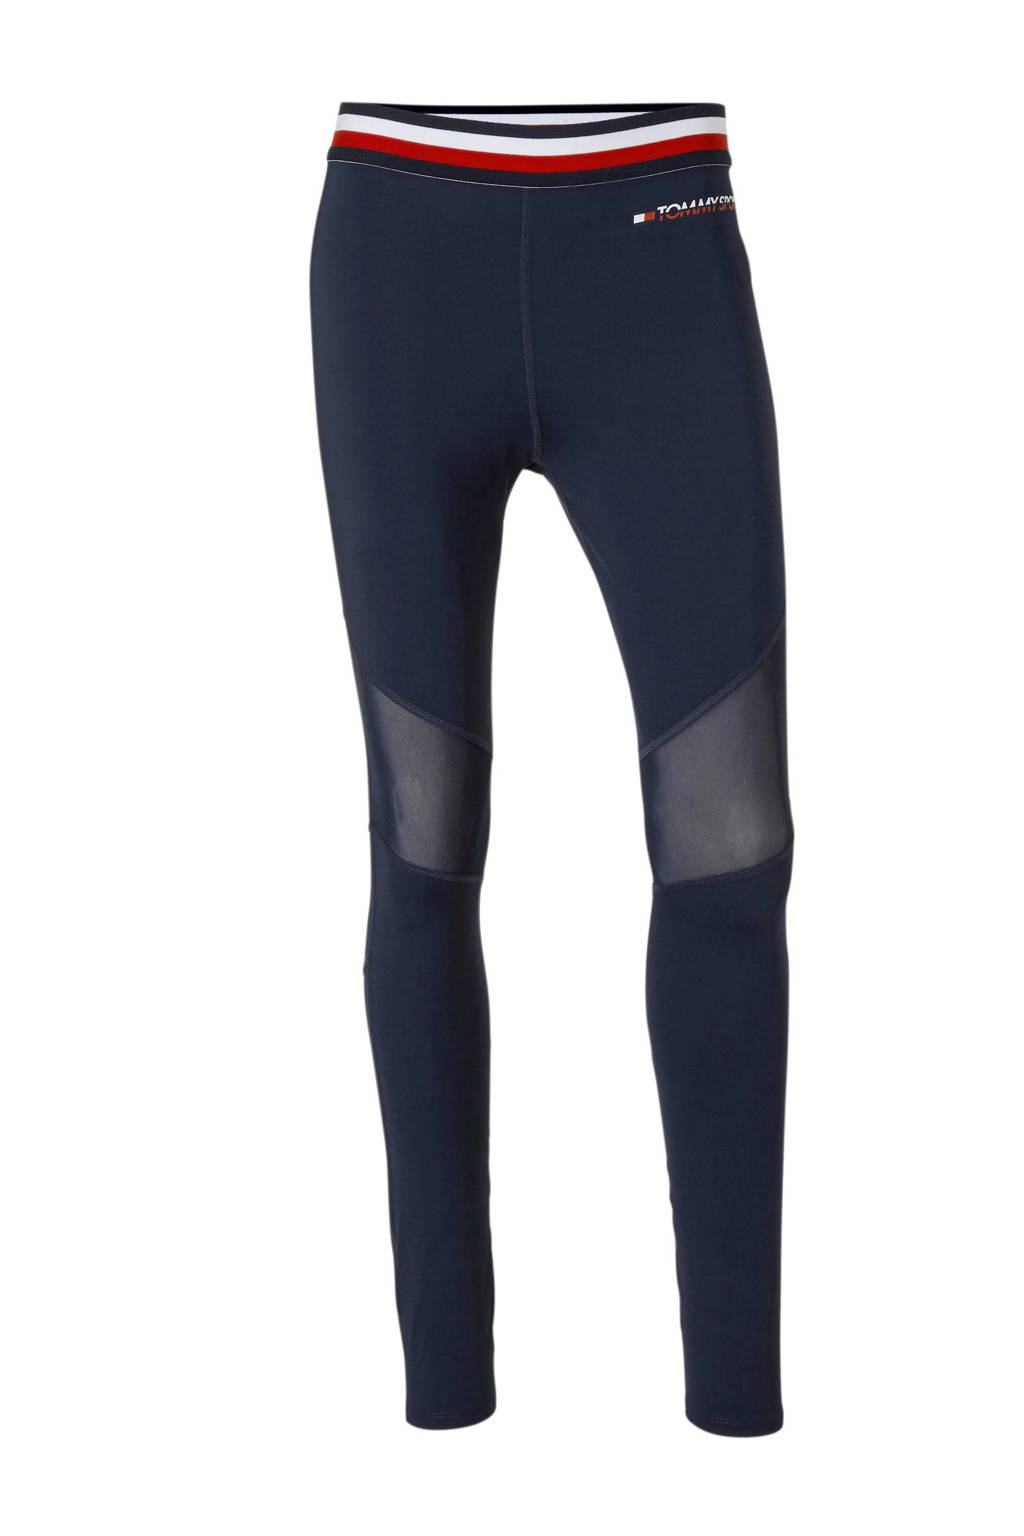 Tommy Sport sportbroek donkerblauw/rood/wit, Donkerblauw/rood/wit